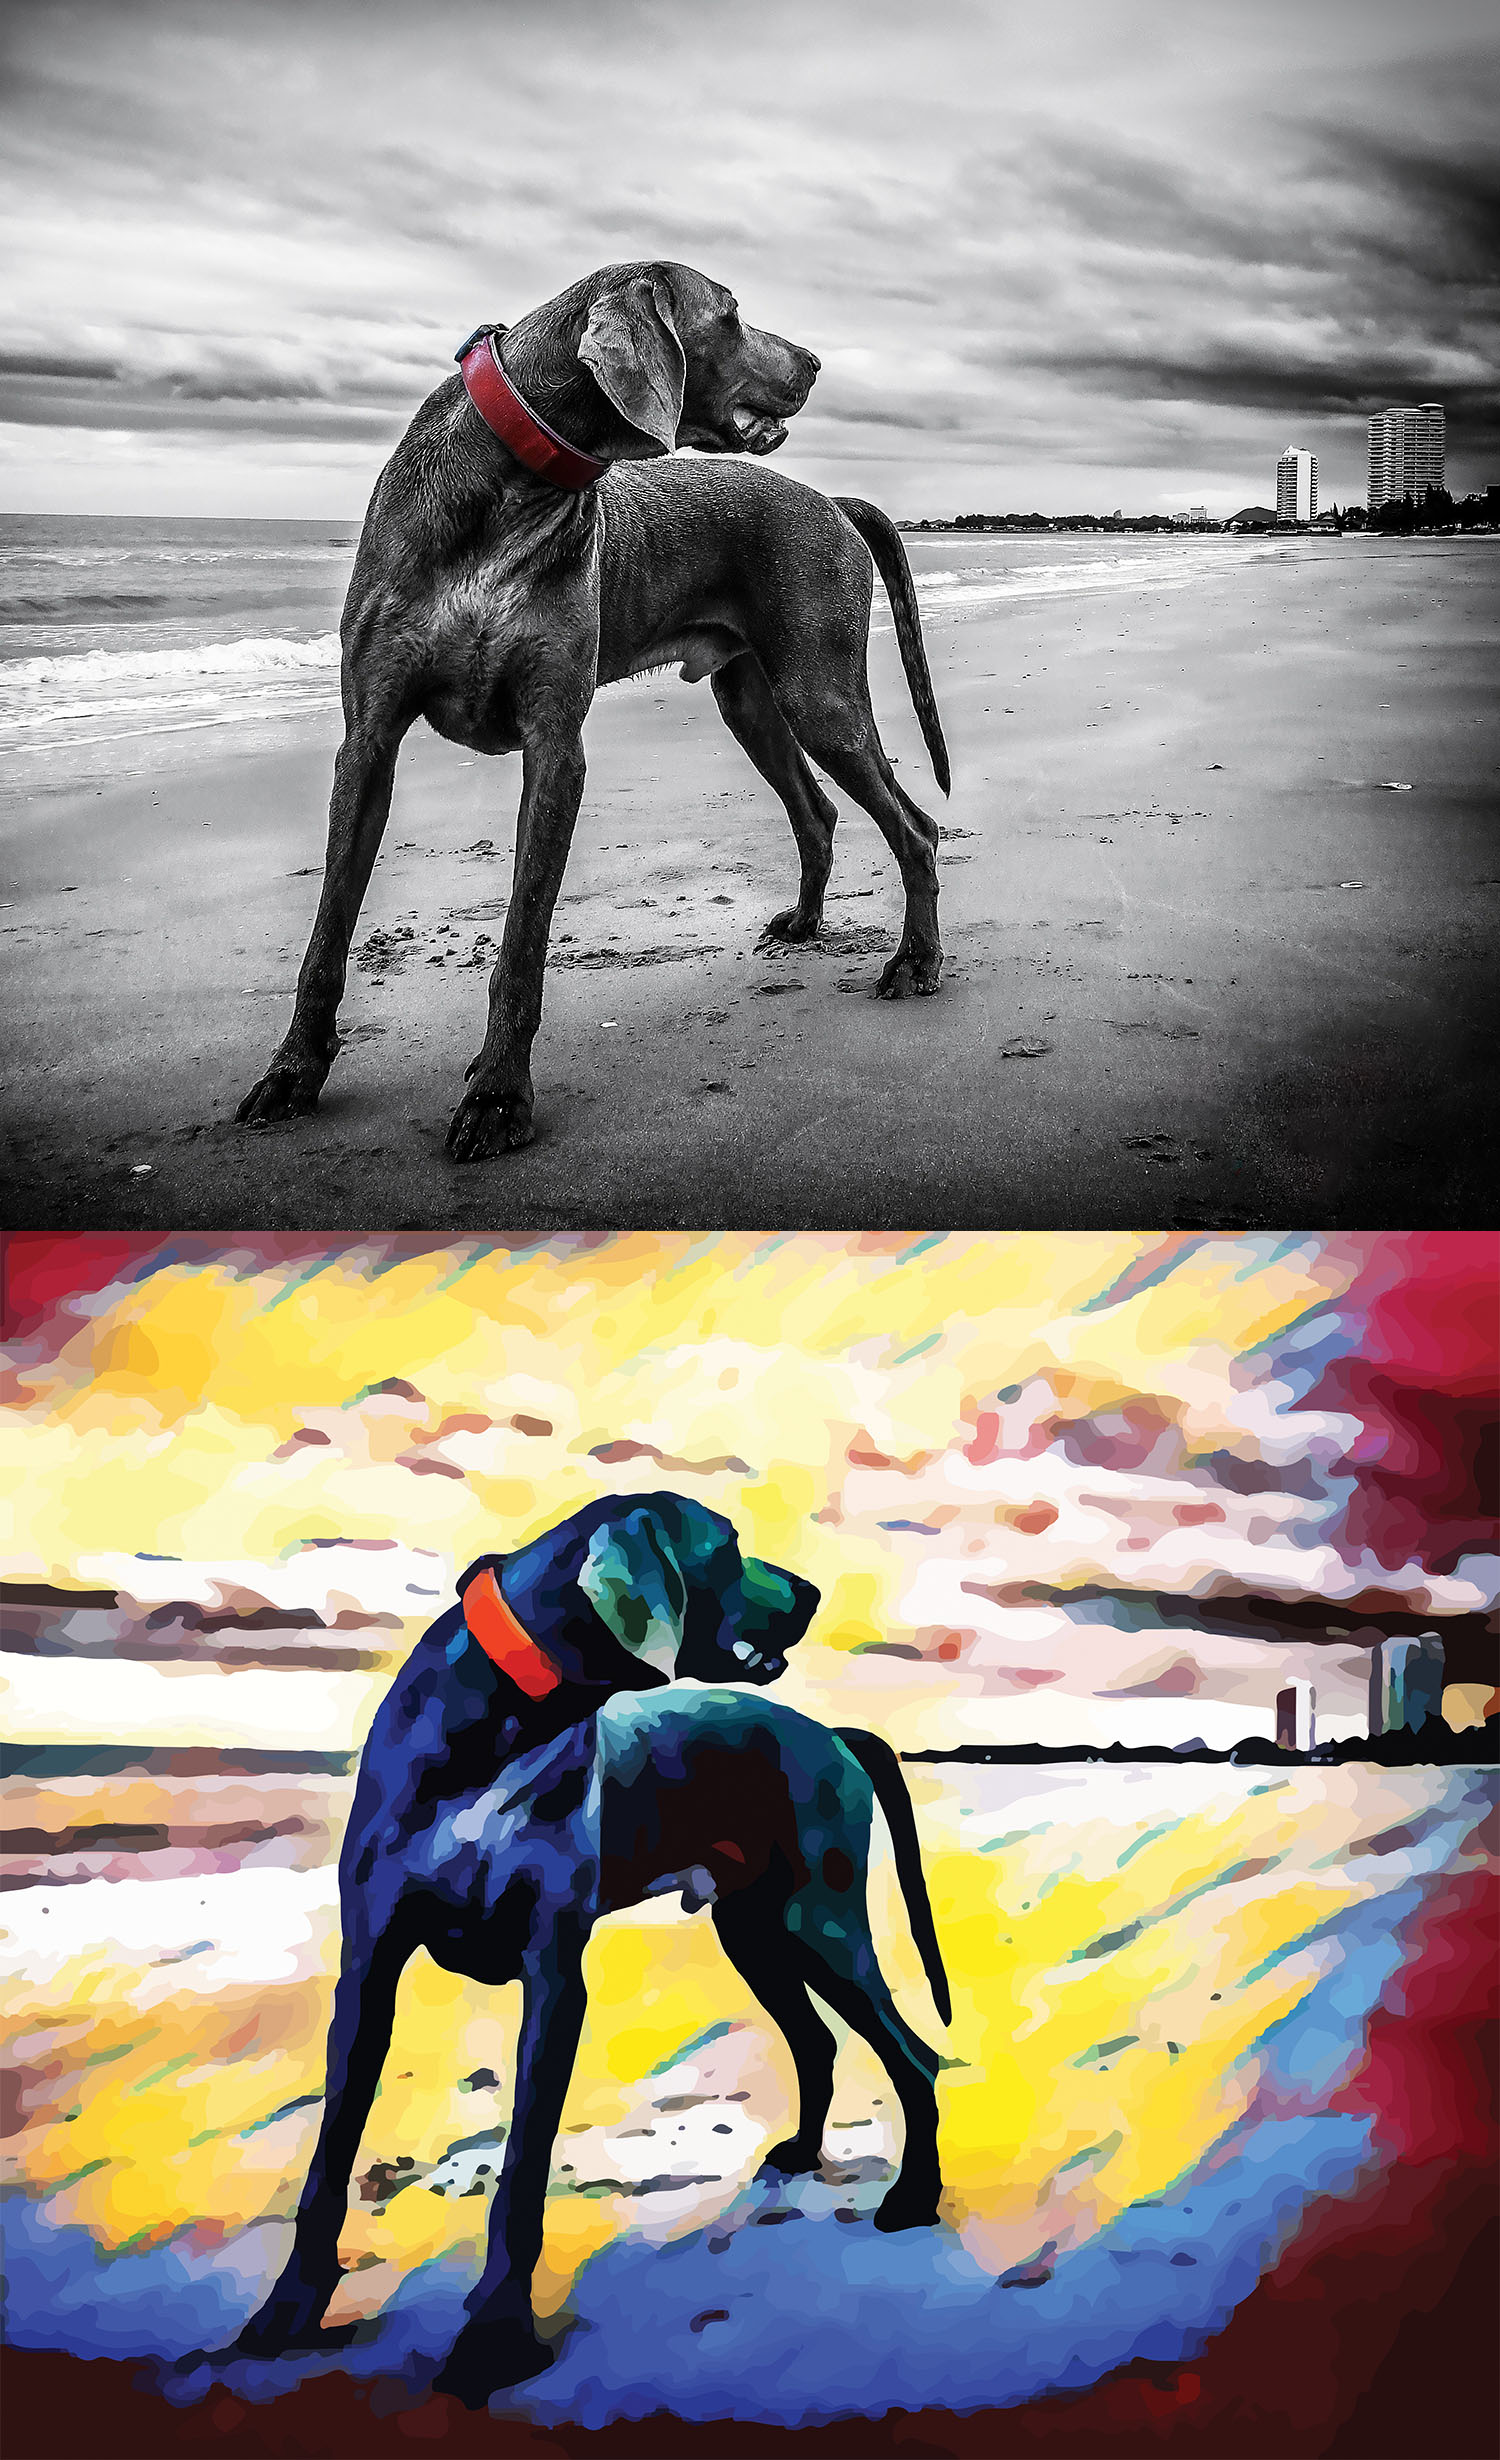 Before and after stylized image of a big dog standing on a beach looking back over its shoulder